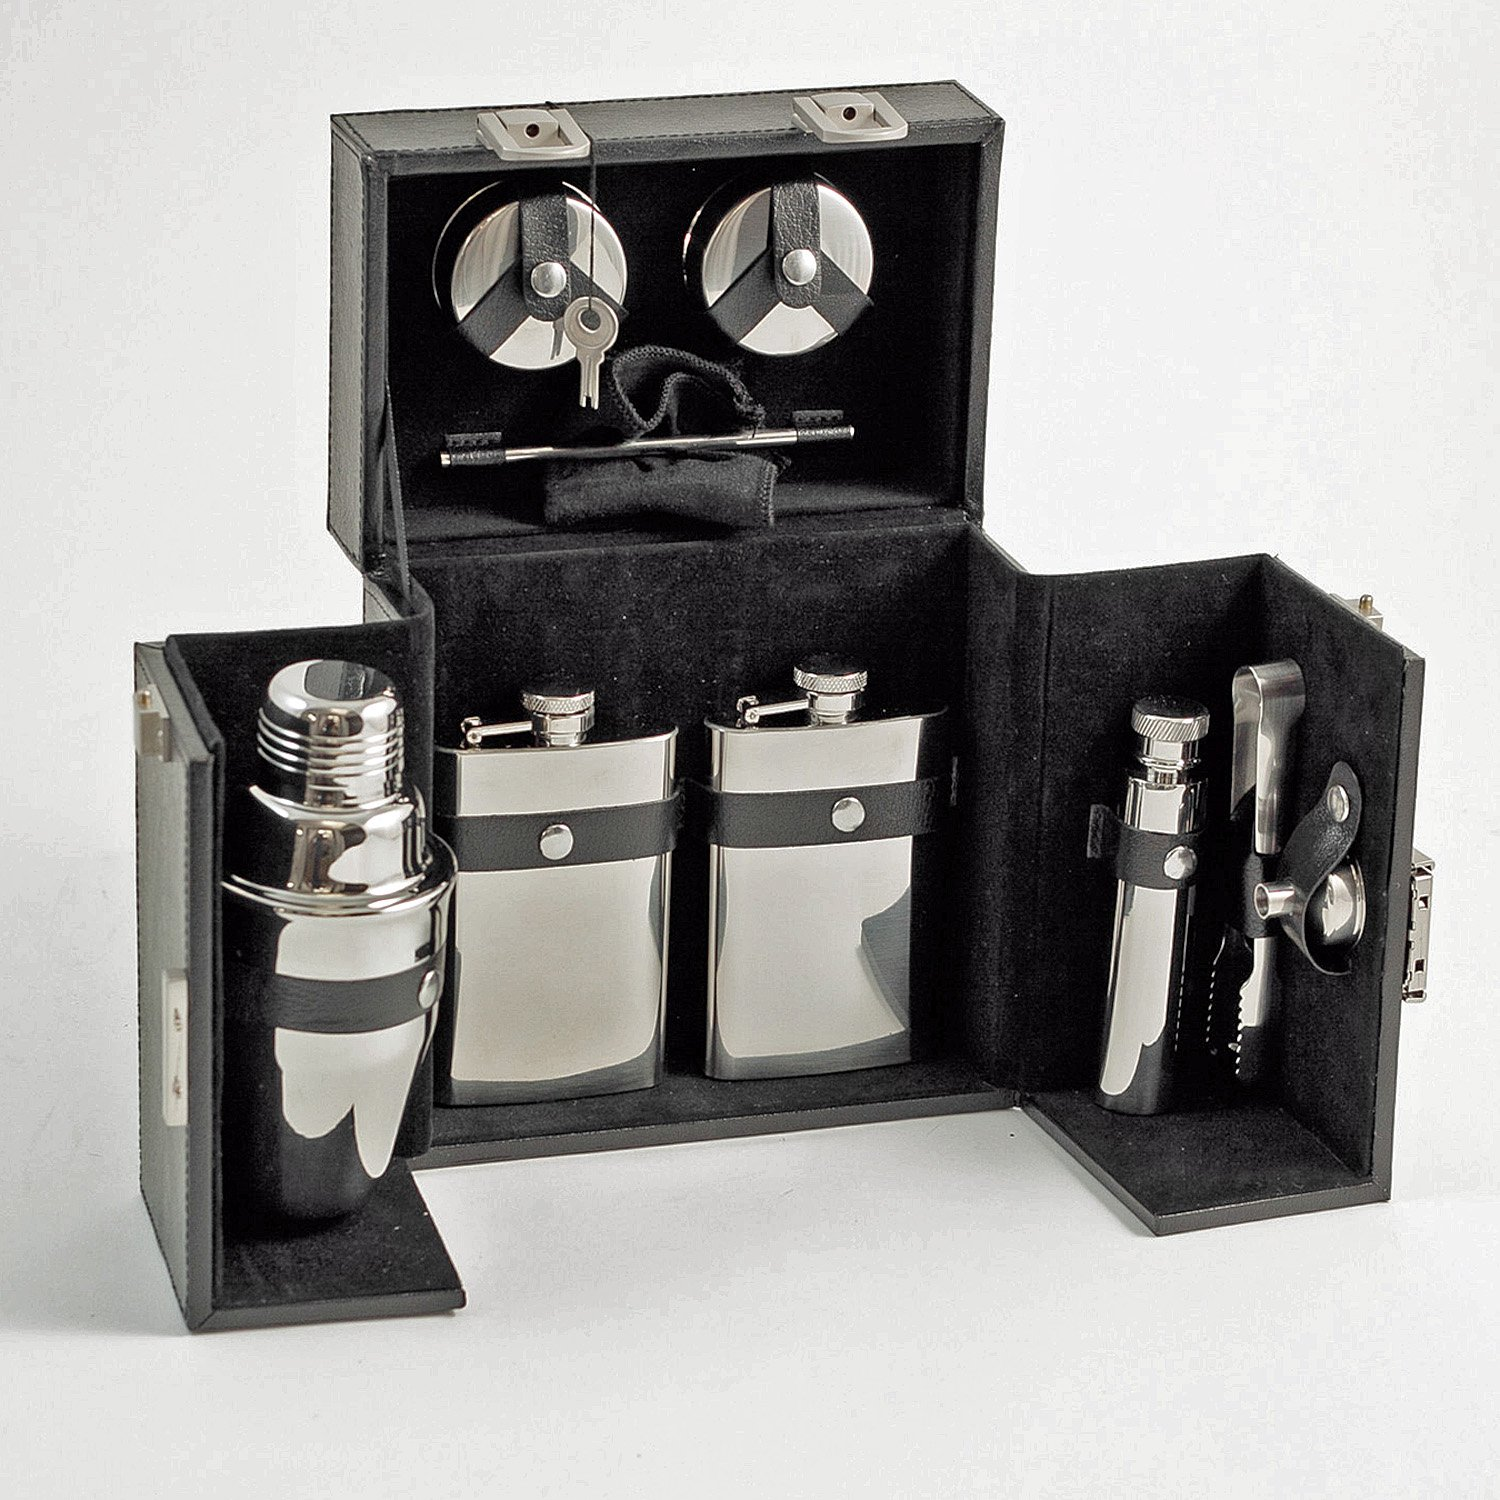 Travel Bar Set - 10-pc Stainless Steel Travel Bar Set in Black Leather Case